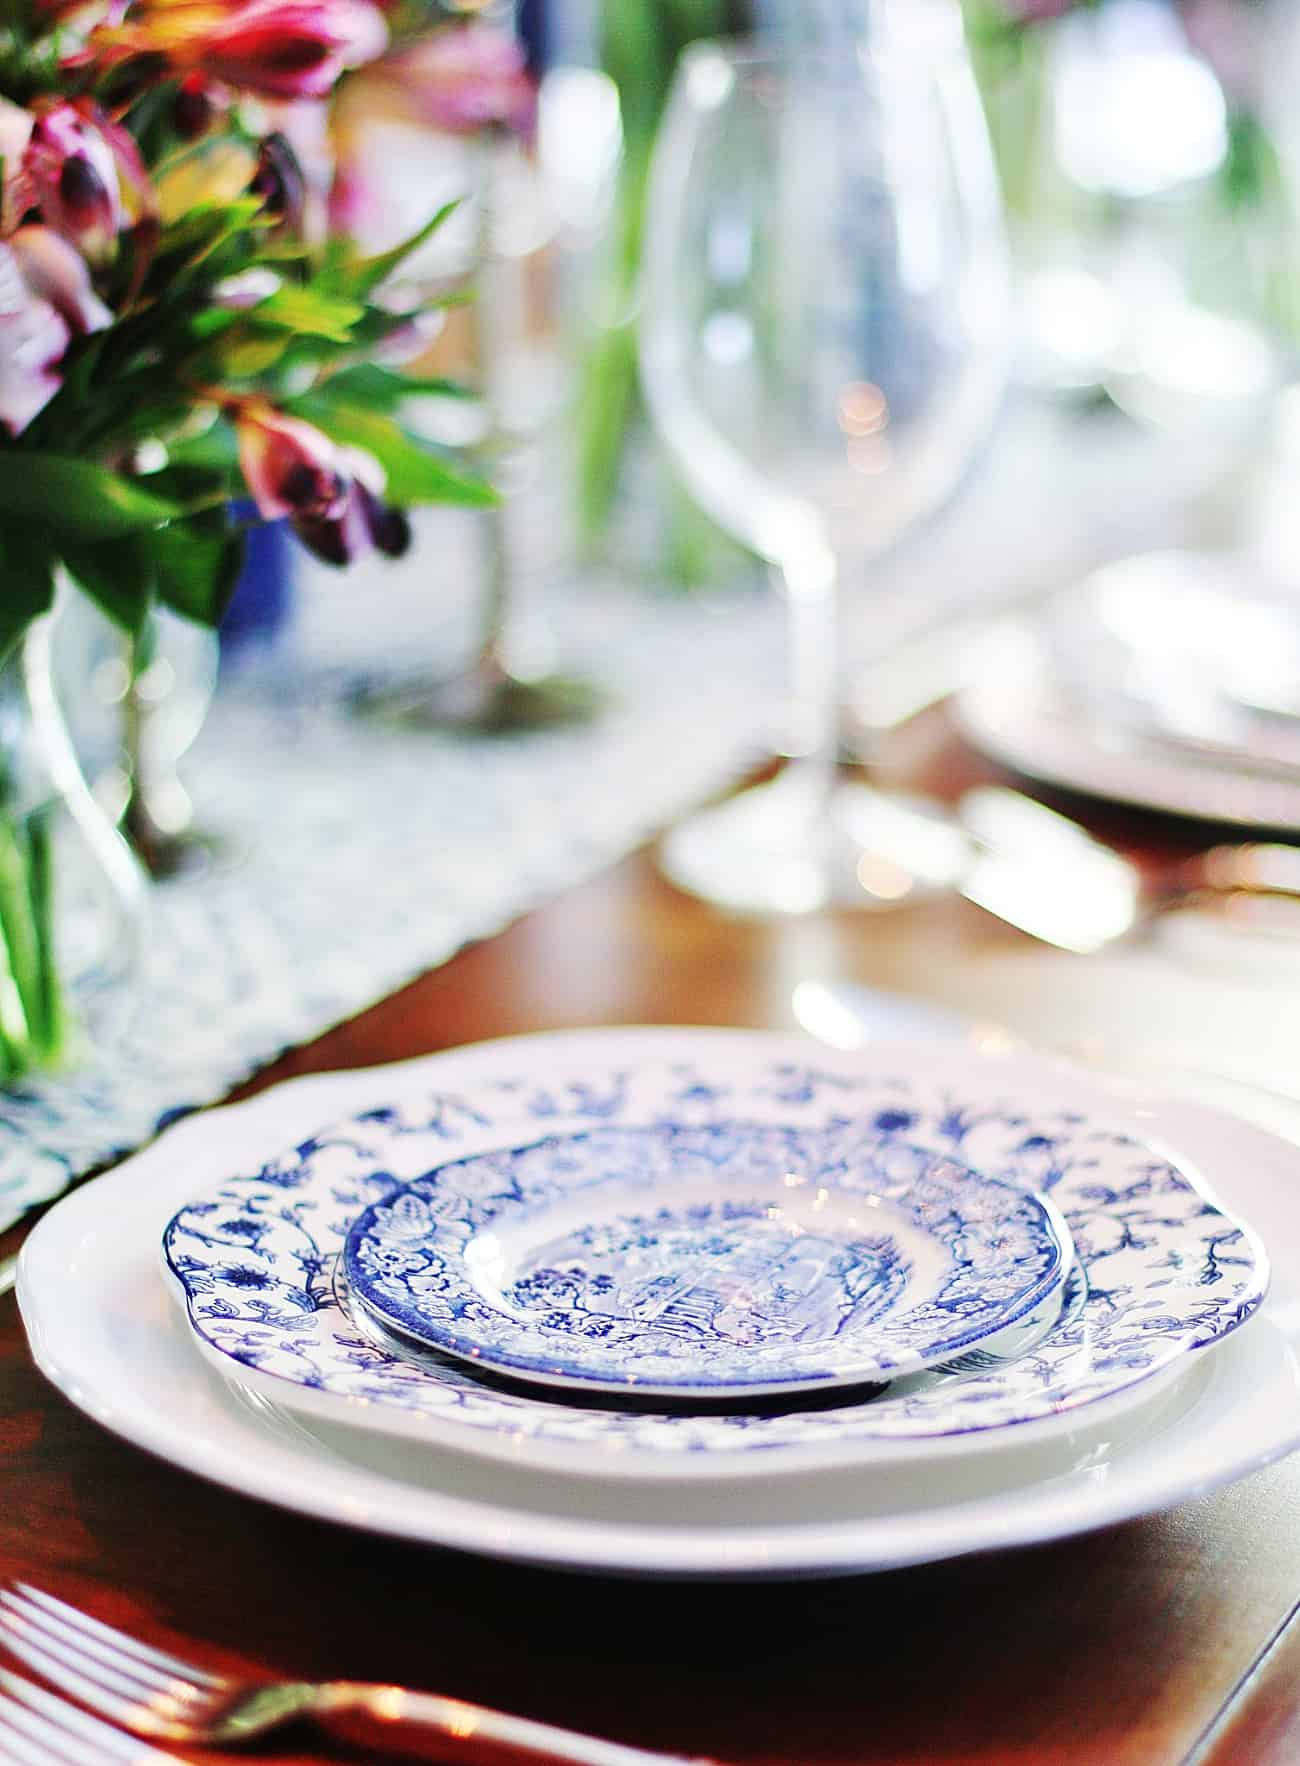 plates on table